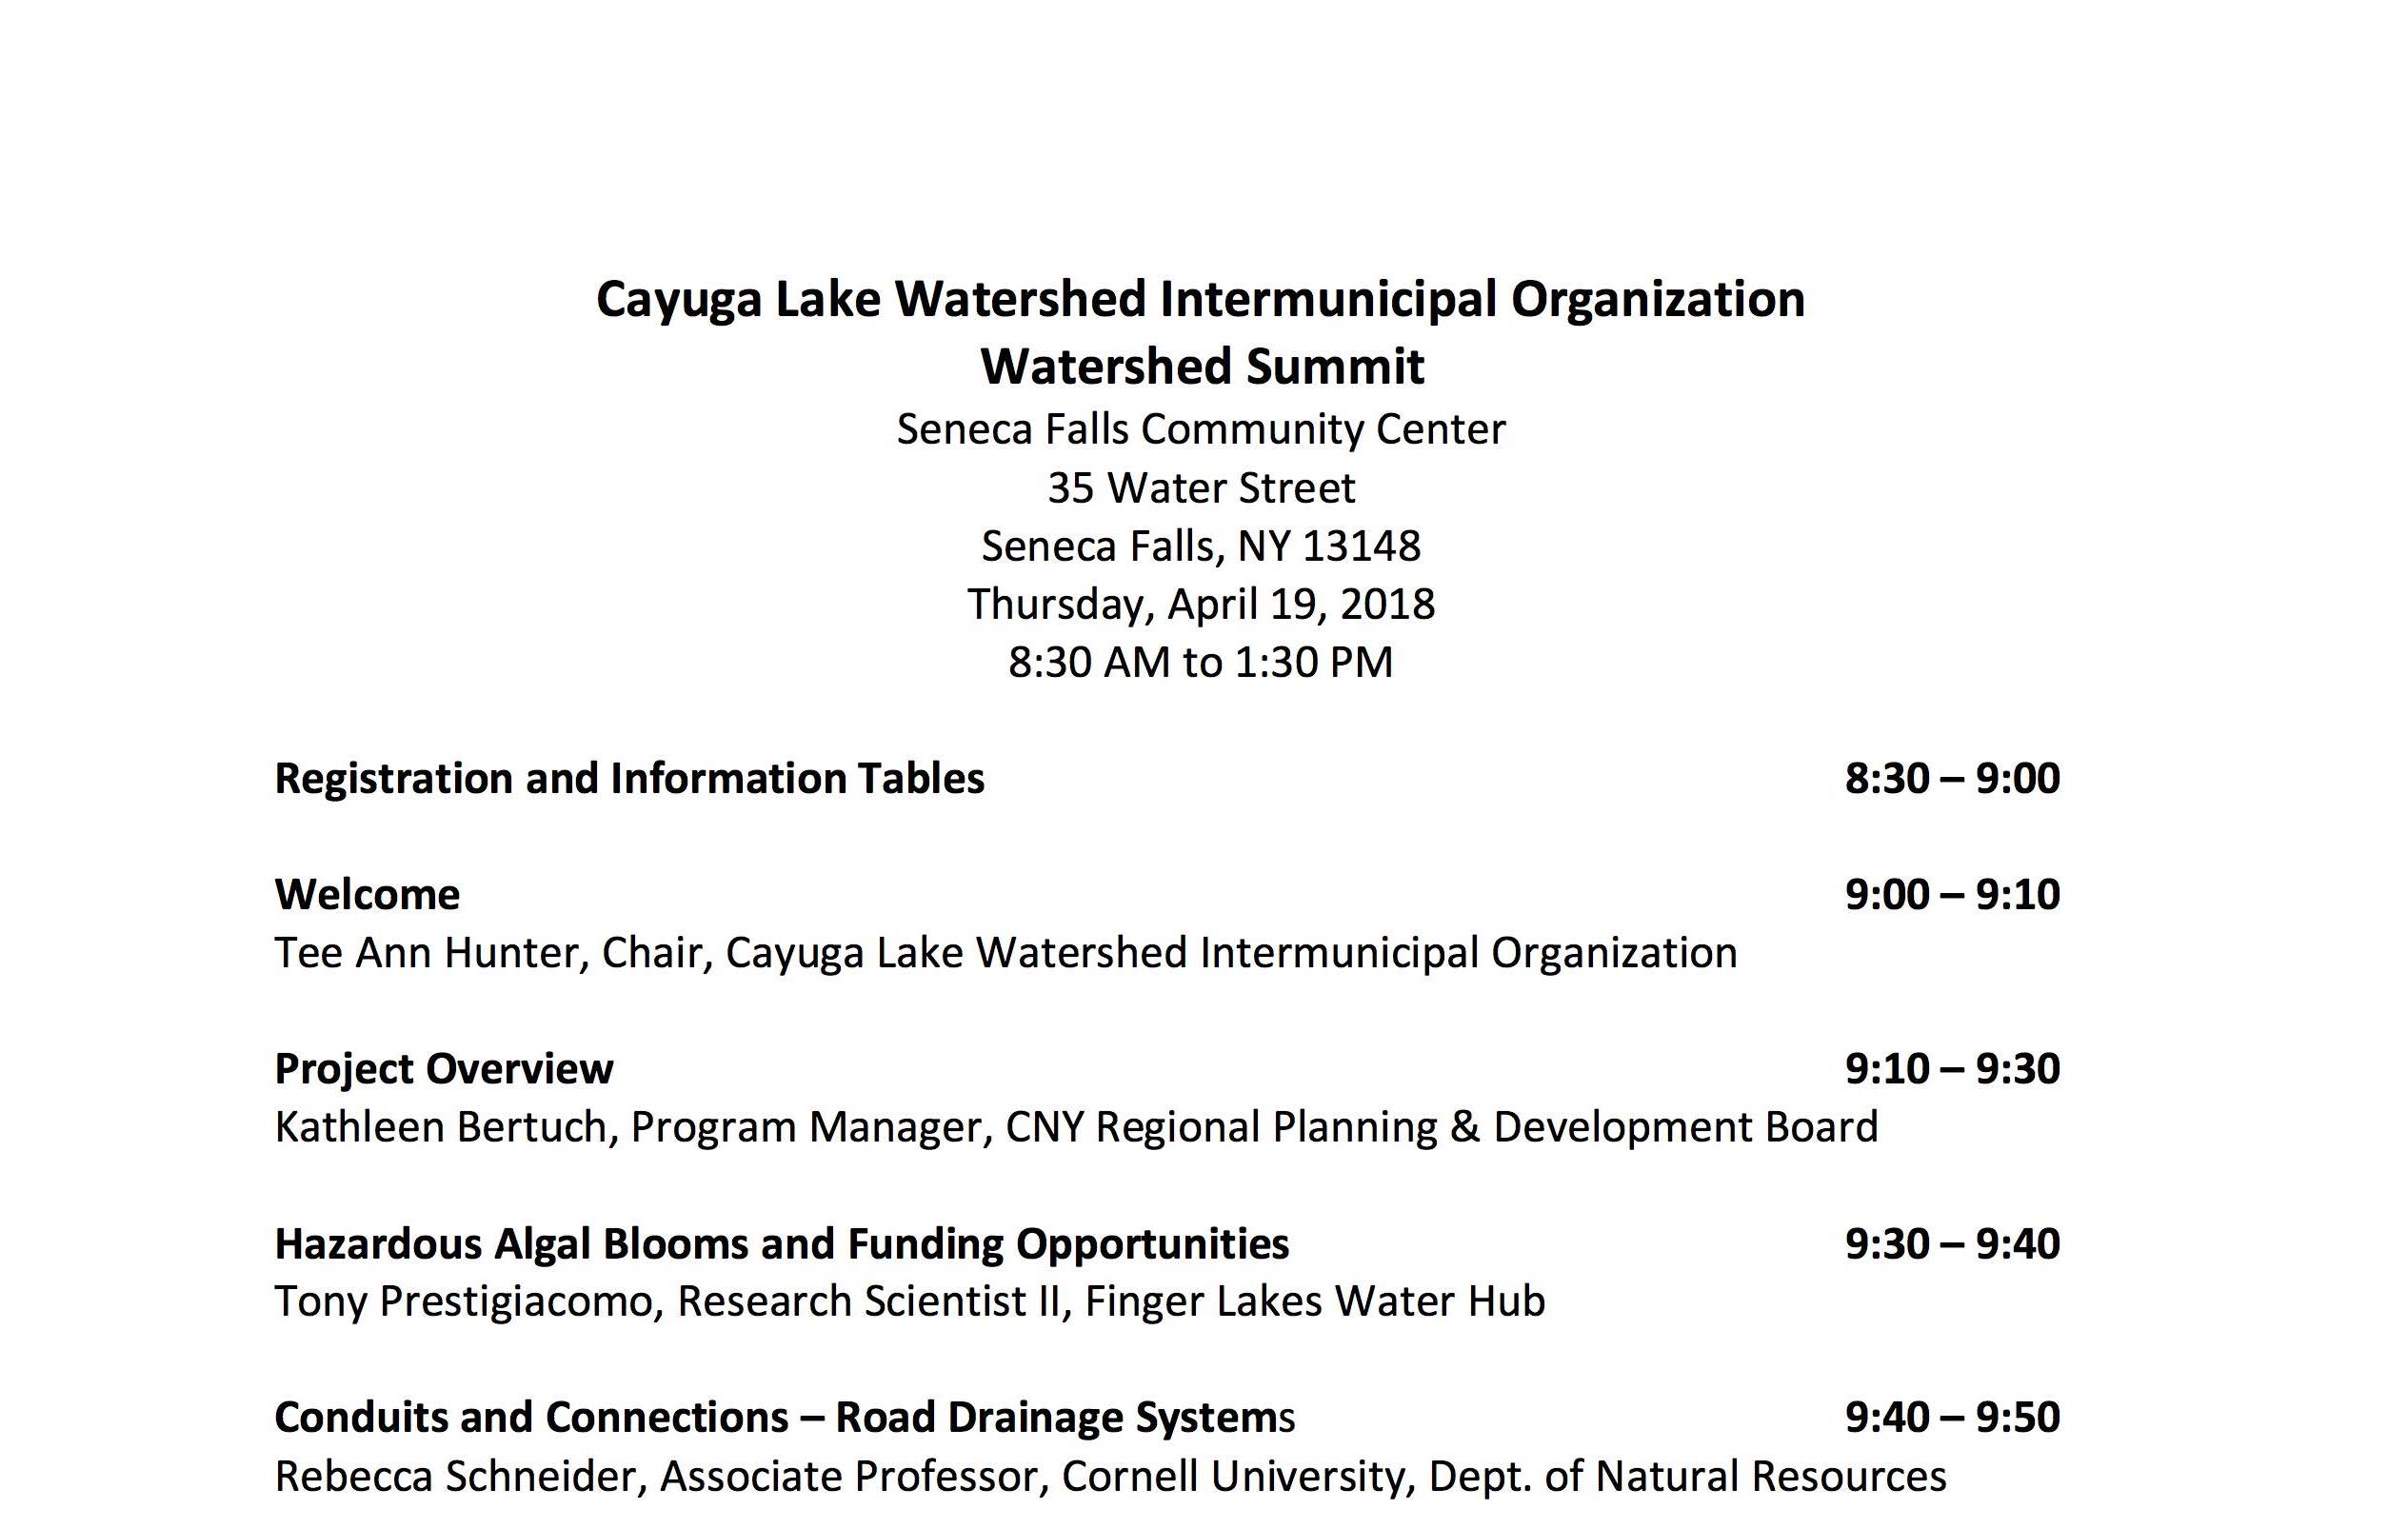 Watershed summit agenda